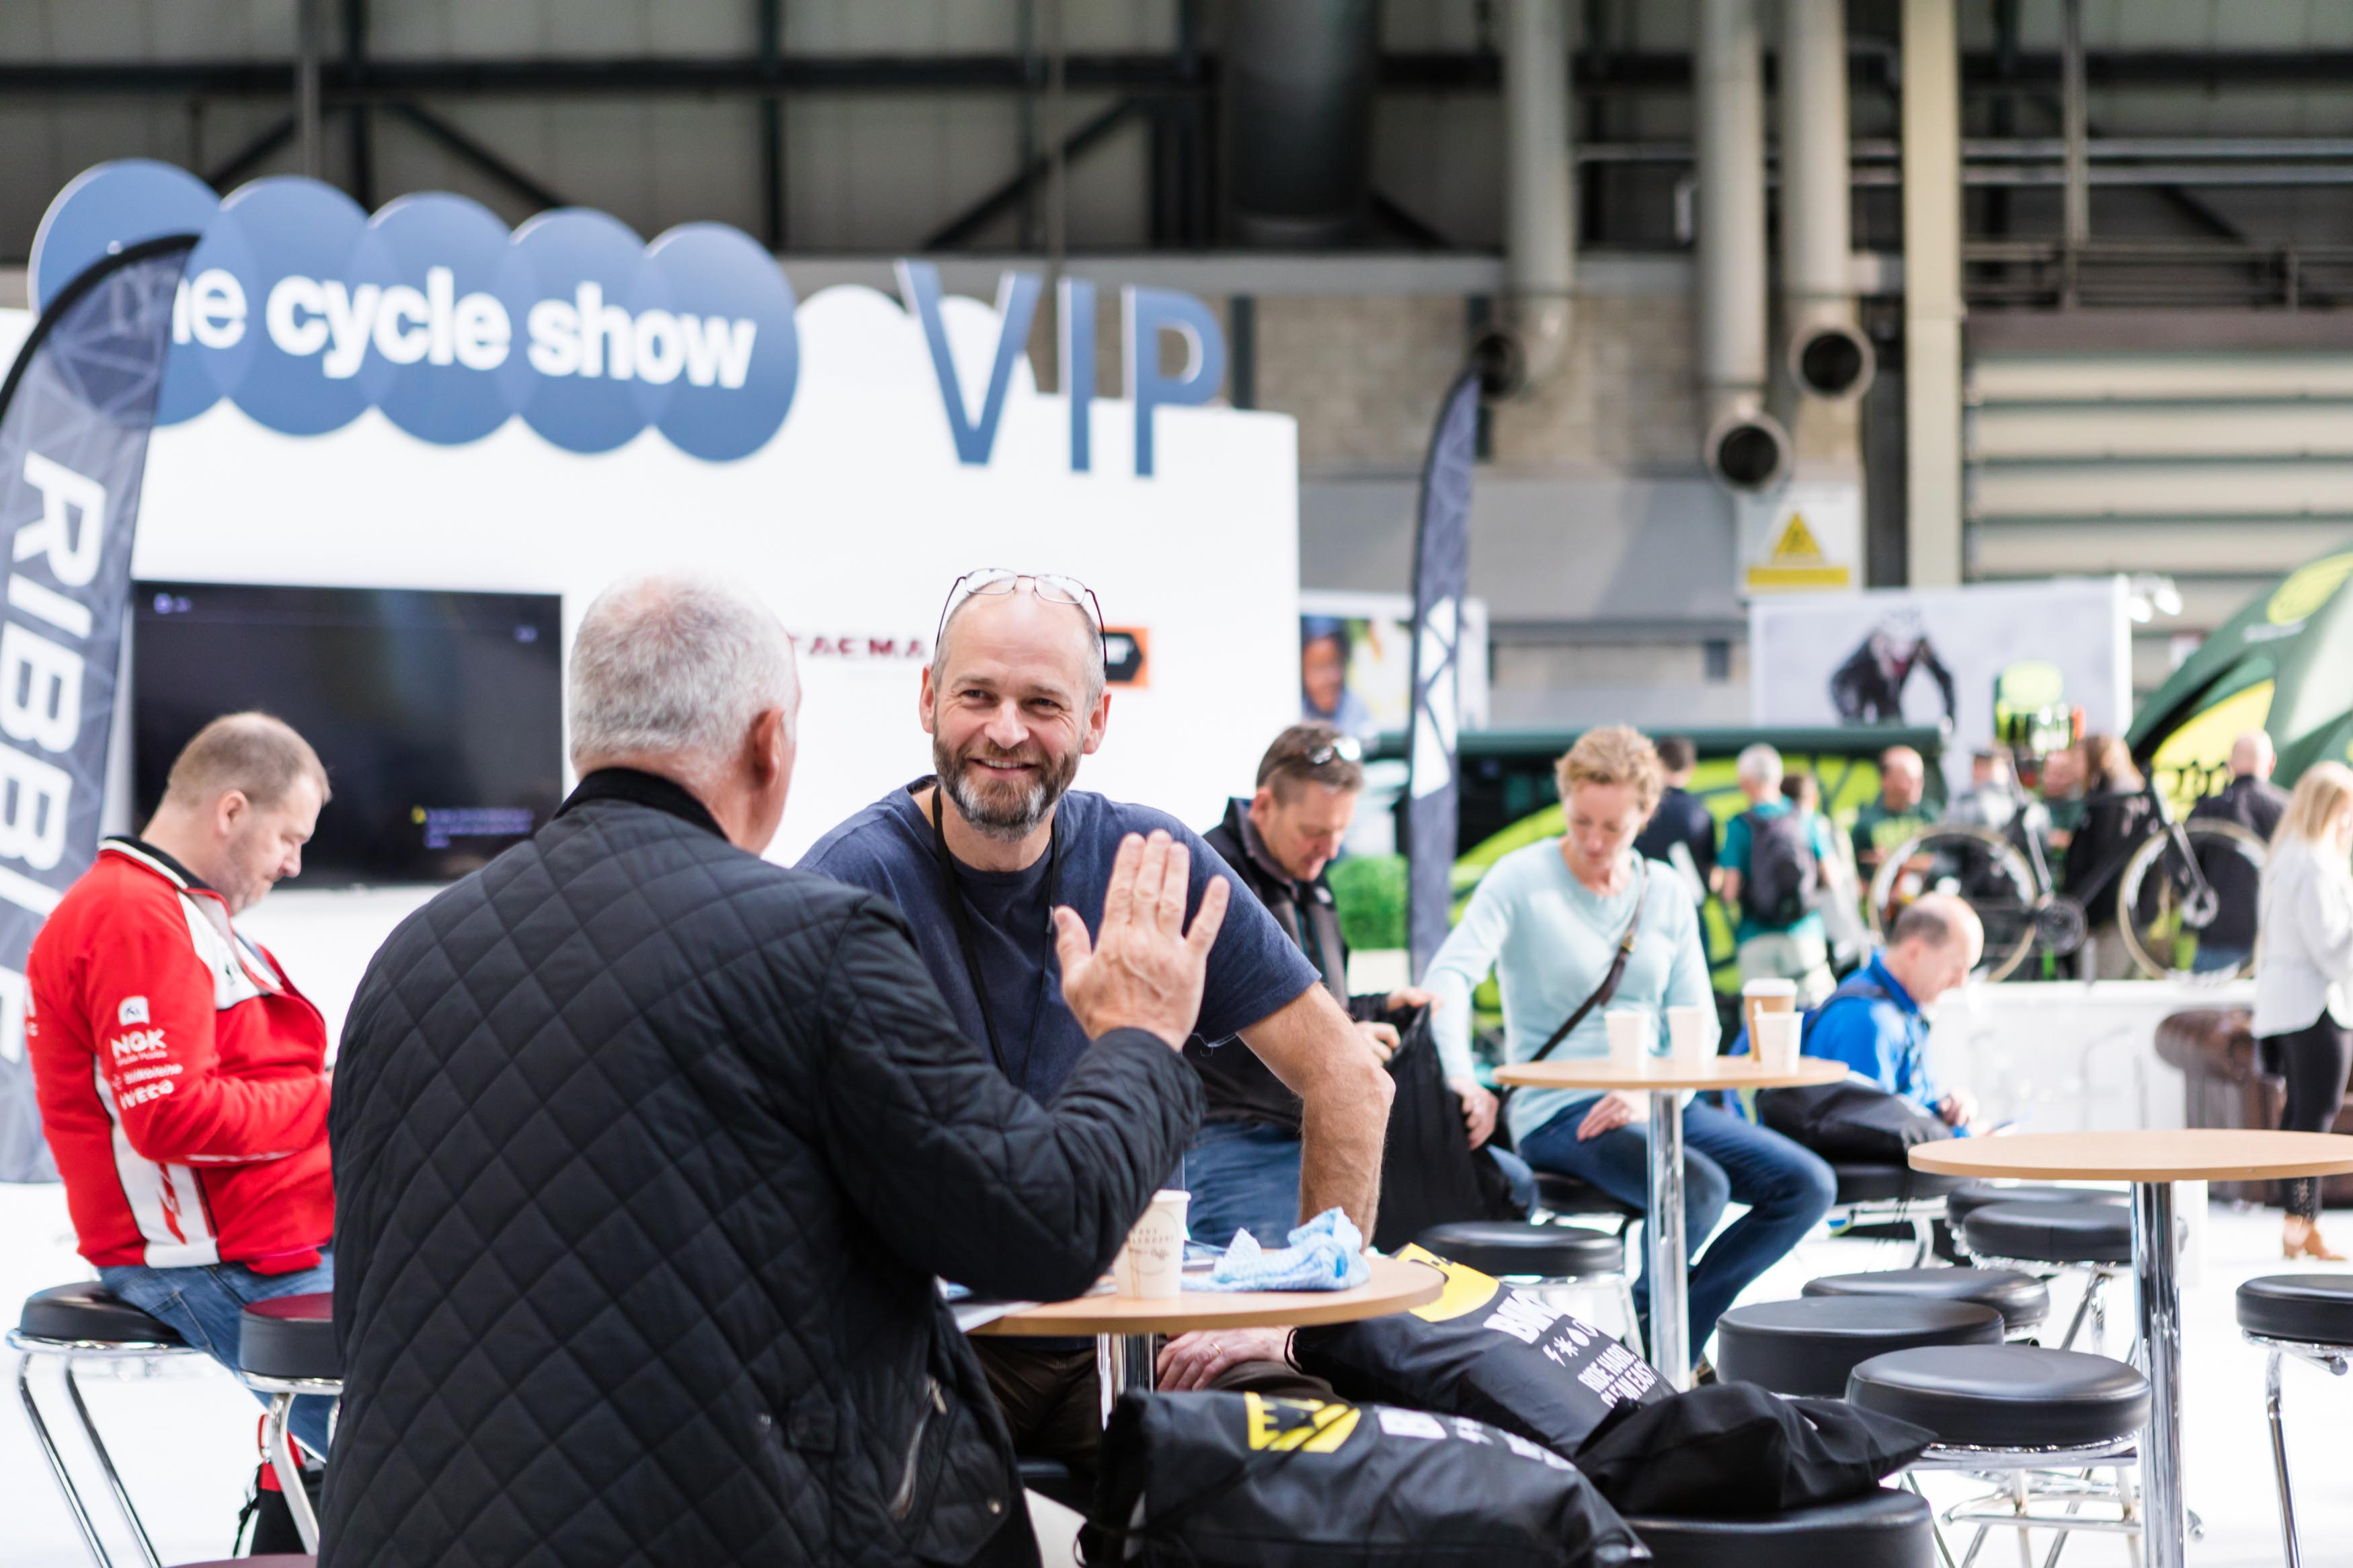 The Cycle Show is back for 2019